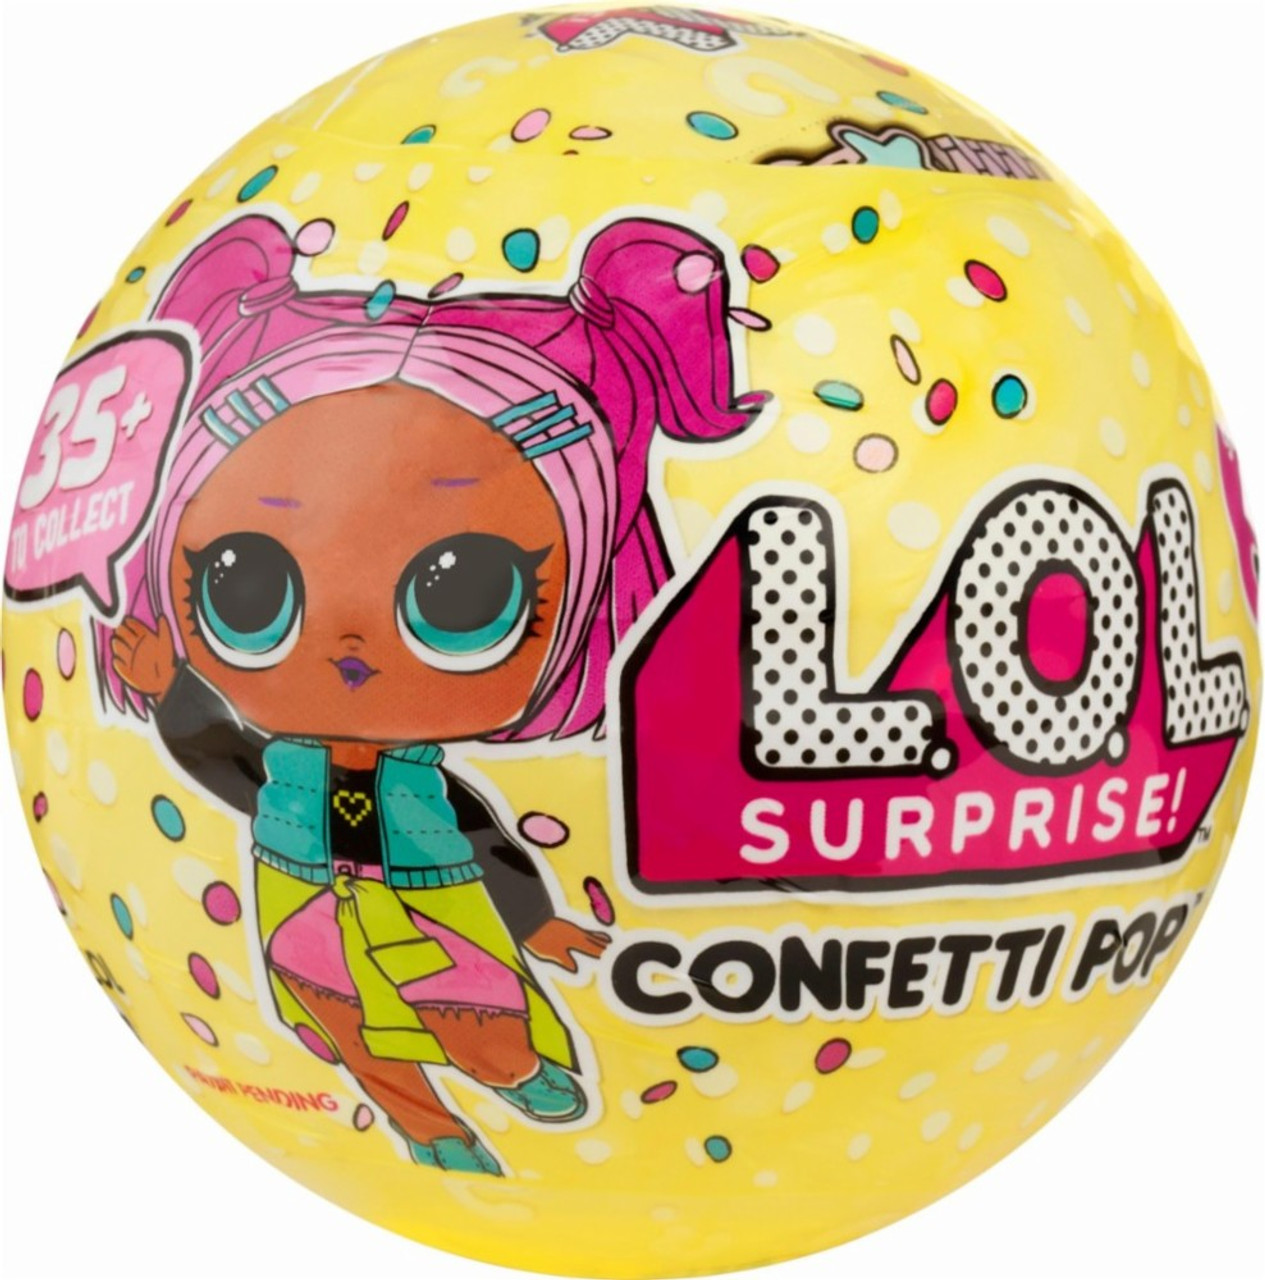 Lol Surprise Confetti Pop Asst In 18Pc Pdq Series 3 Wave 1